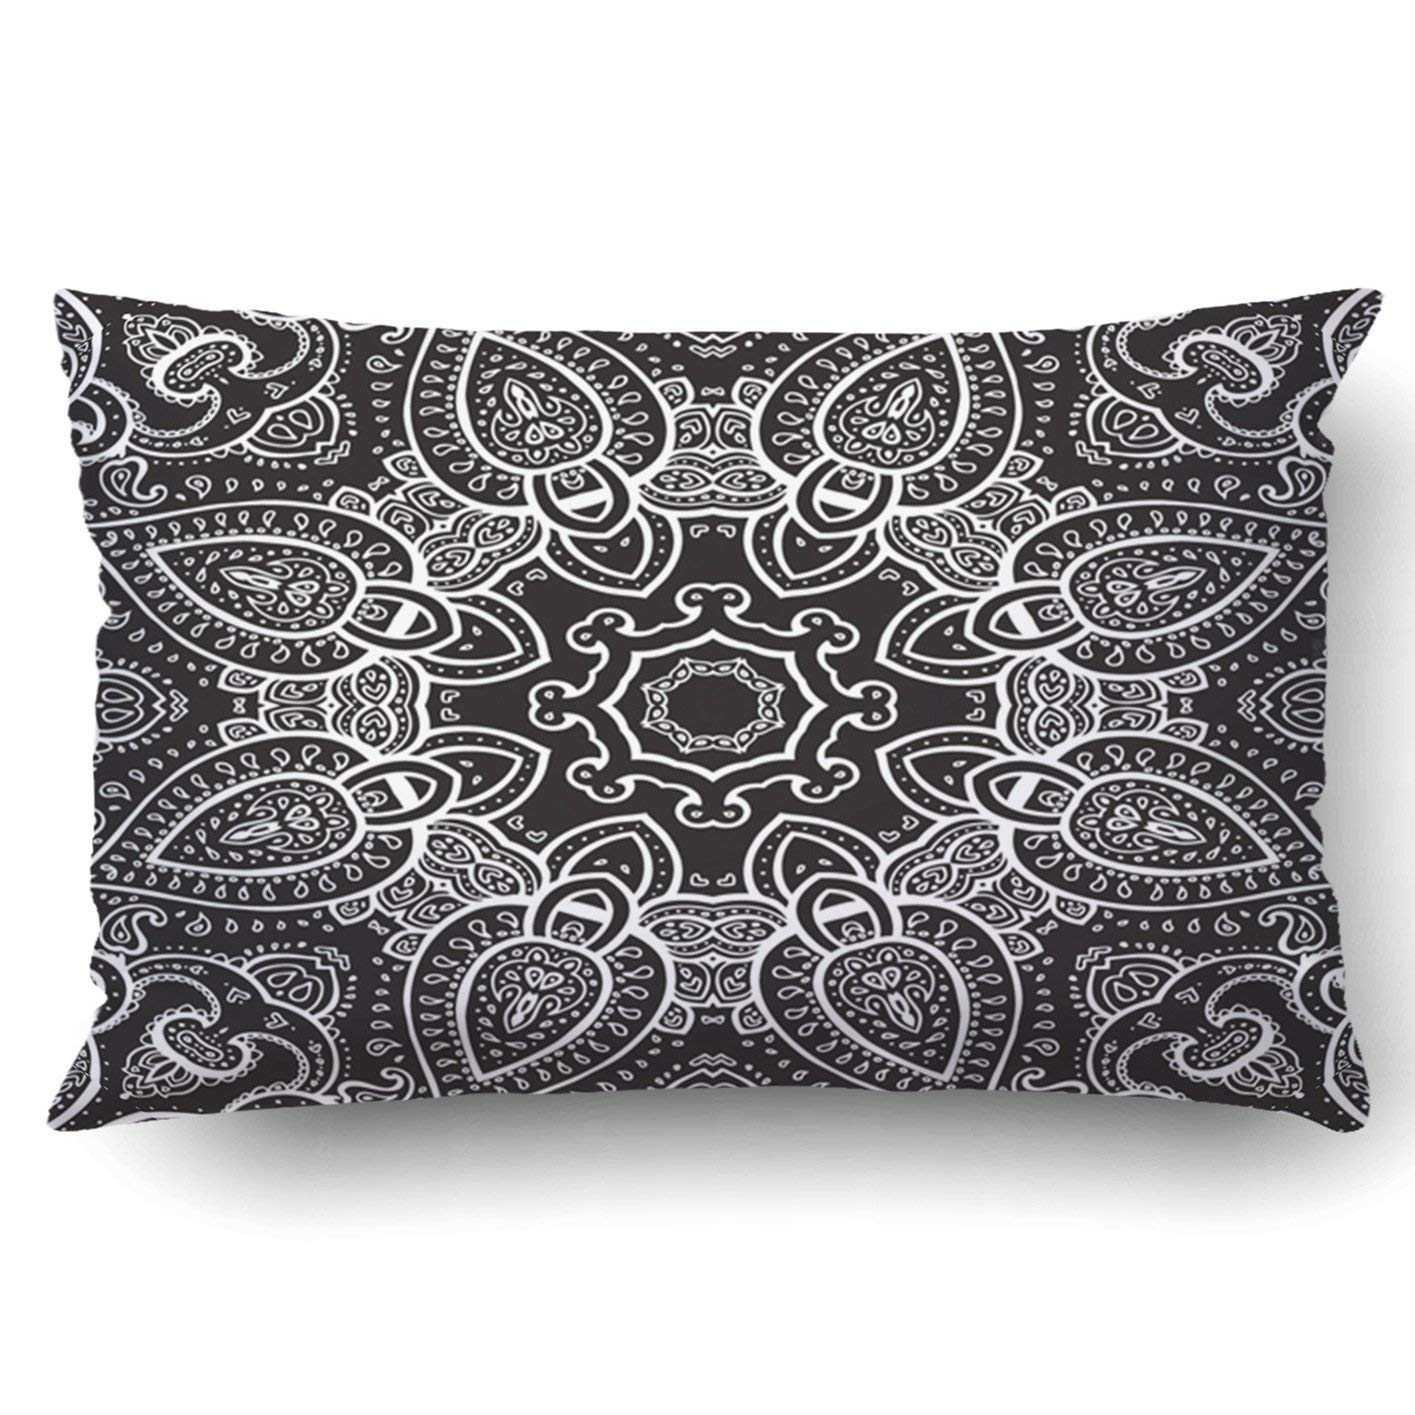 WOPOP Lace background White on black Mandala ethnic pattern Pillowcase Throw Pillow Cover Case 20x30 inches